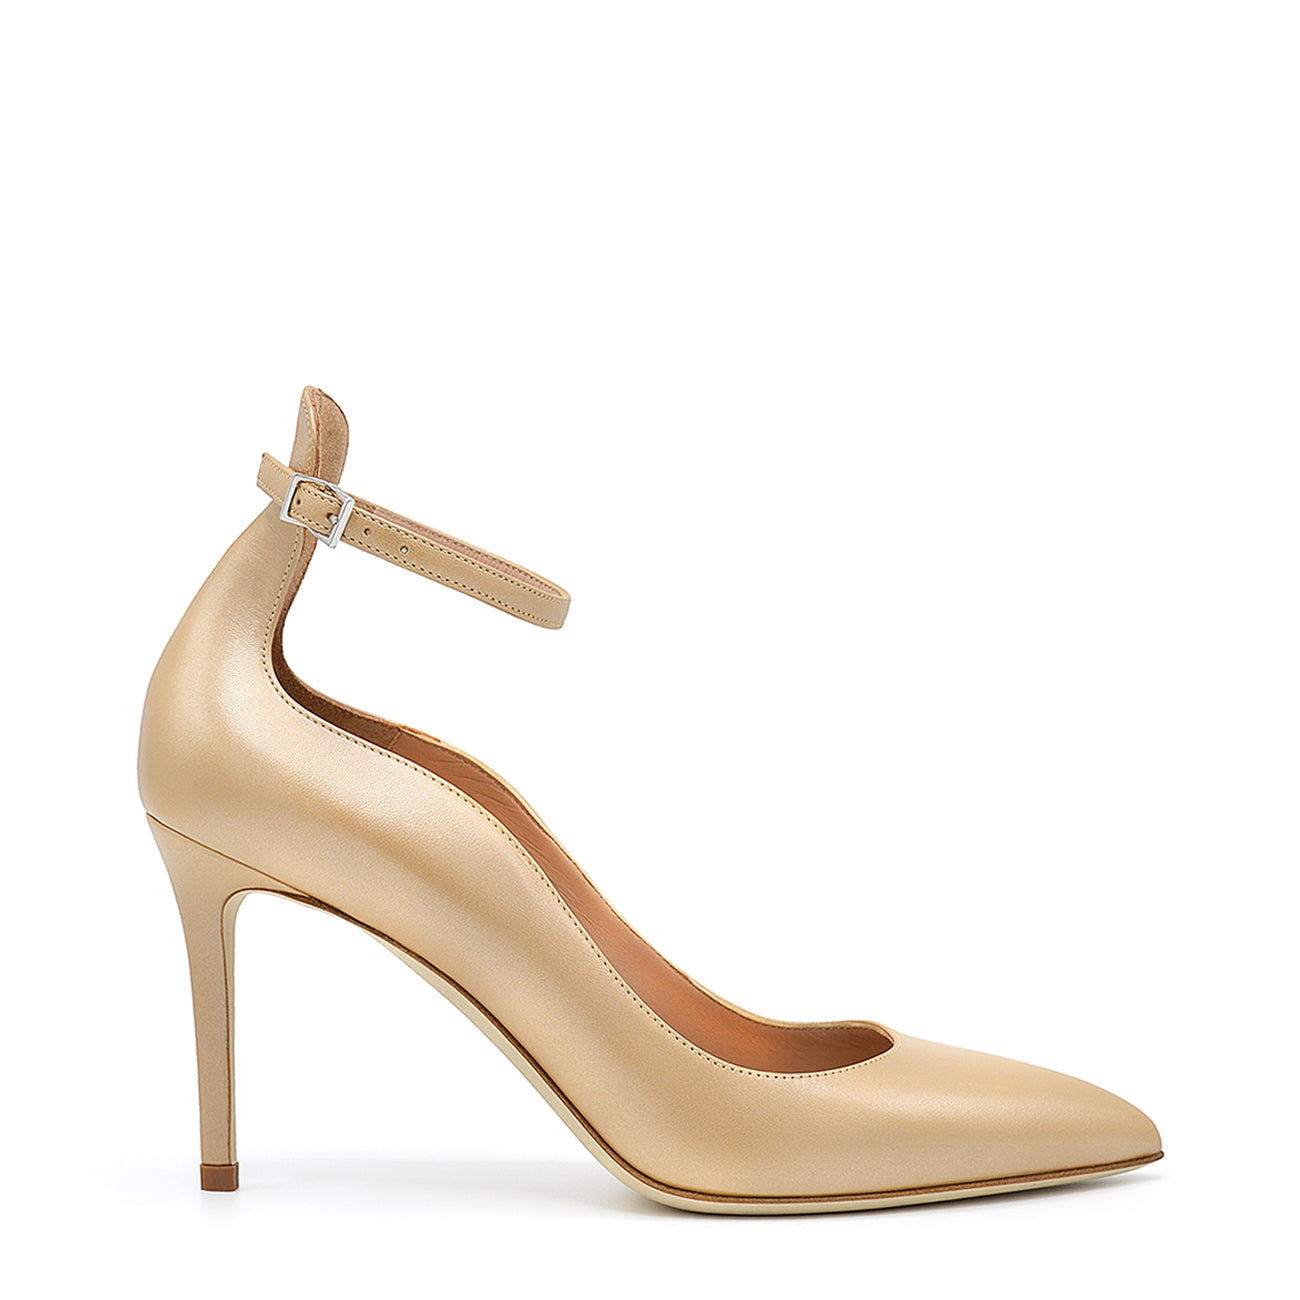 Dudy. <br> Ankle strap juta beige pearly palit leather pumps